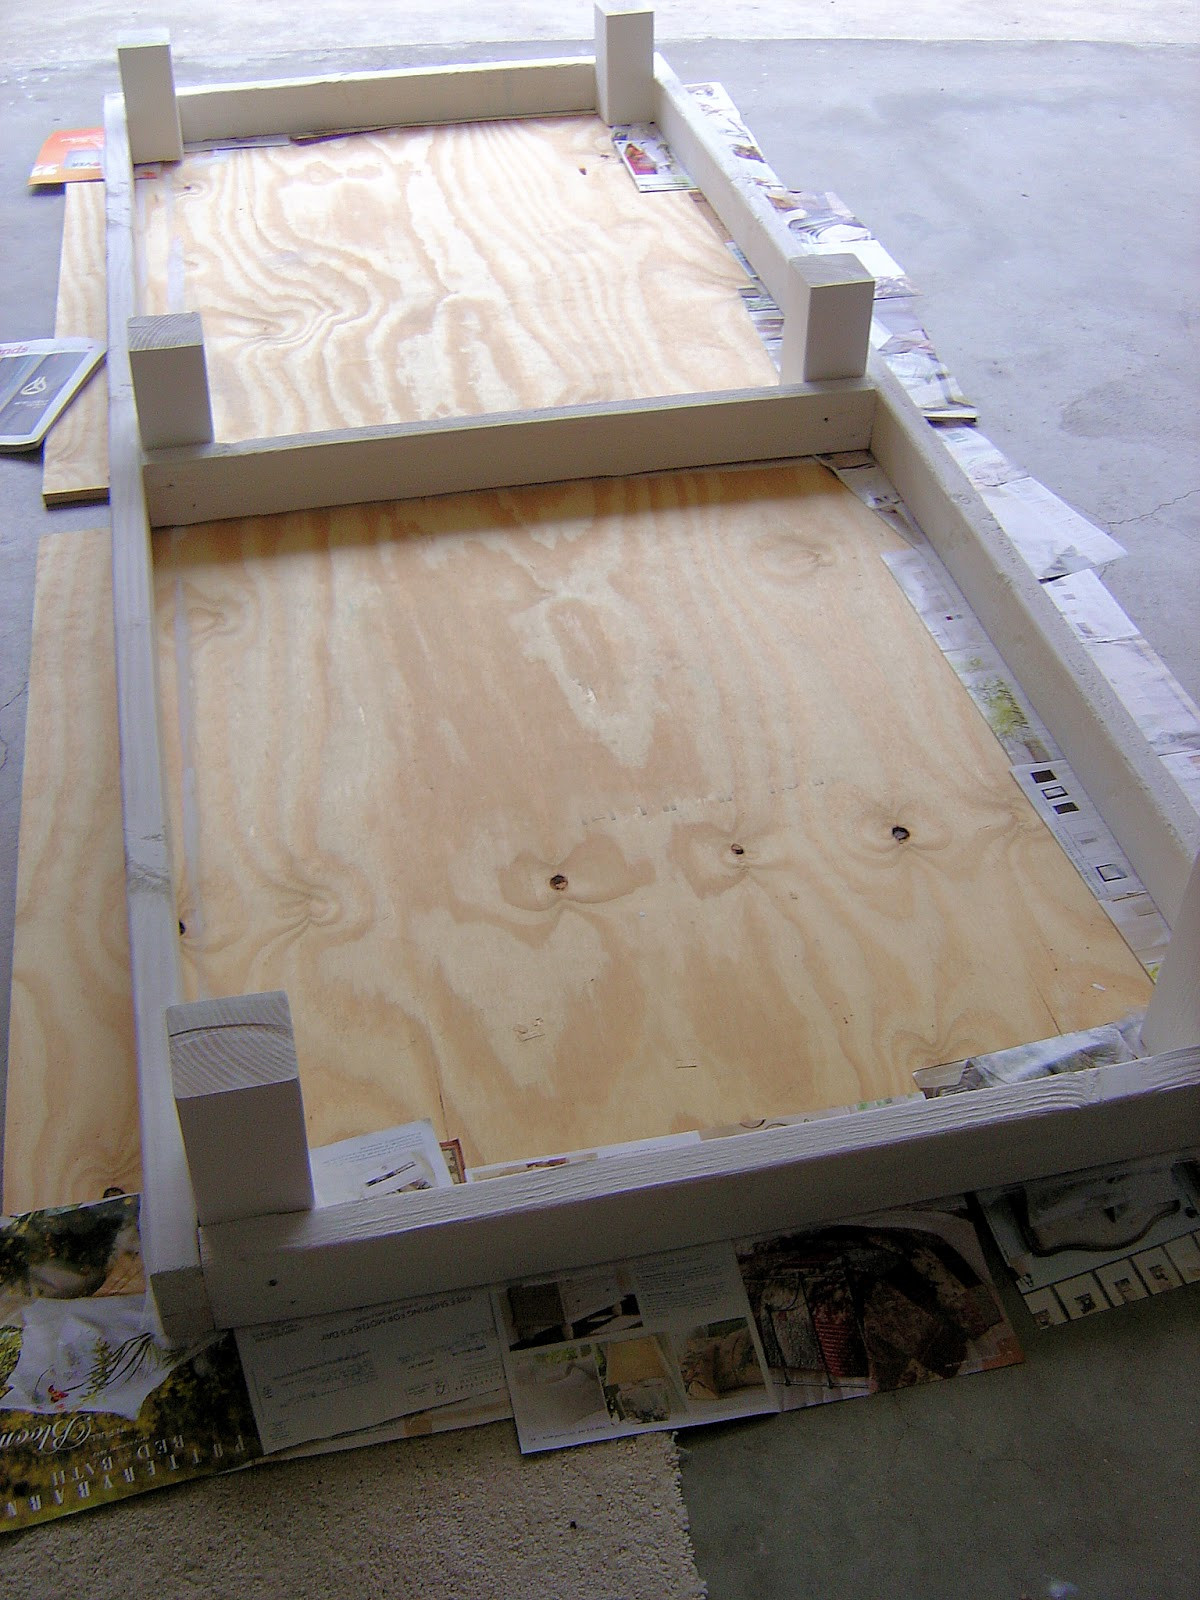 Best ideas about DIY Outdoor Bed . Save or Pin California Livin Home DIY Outdoor Project Phase 2 Now.